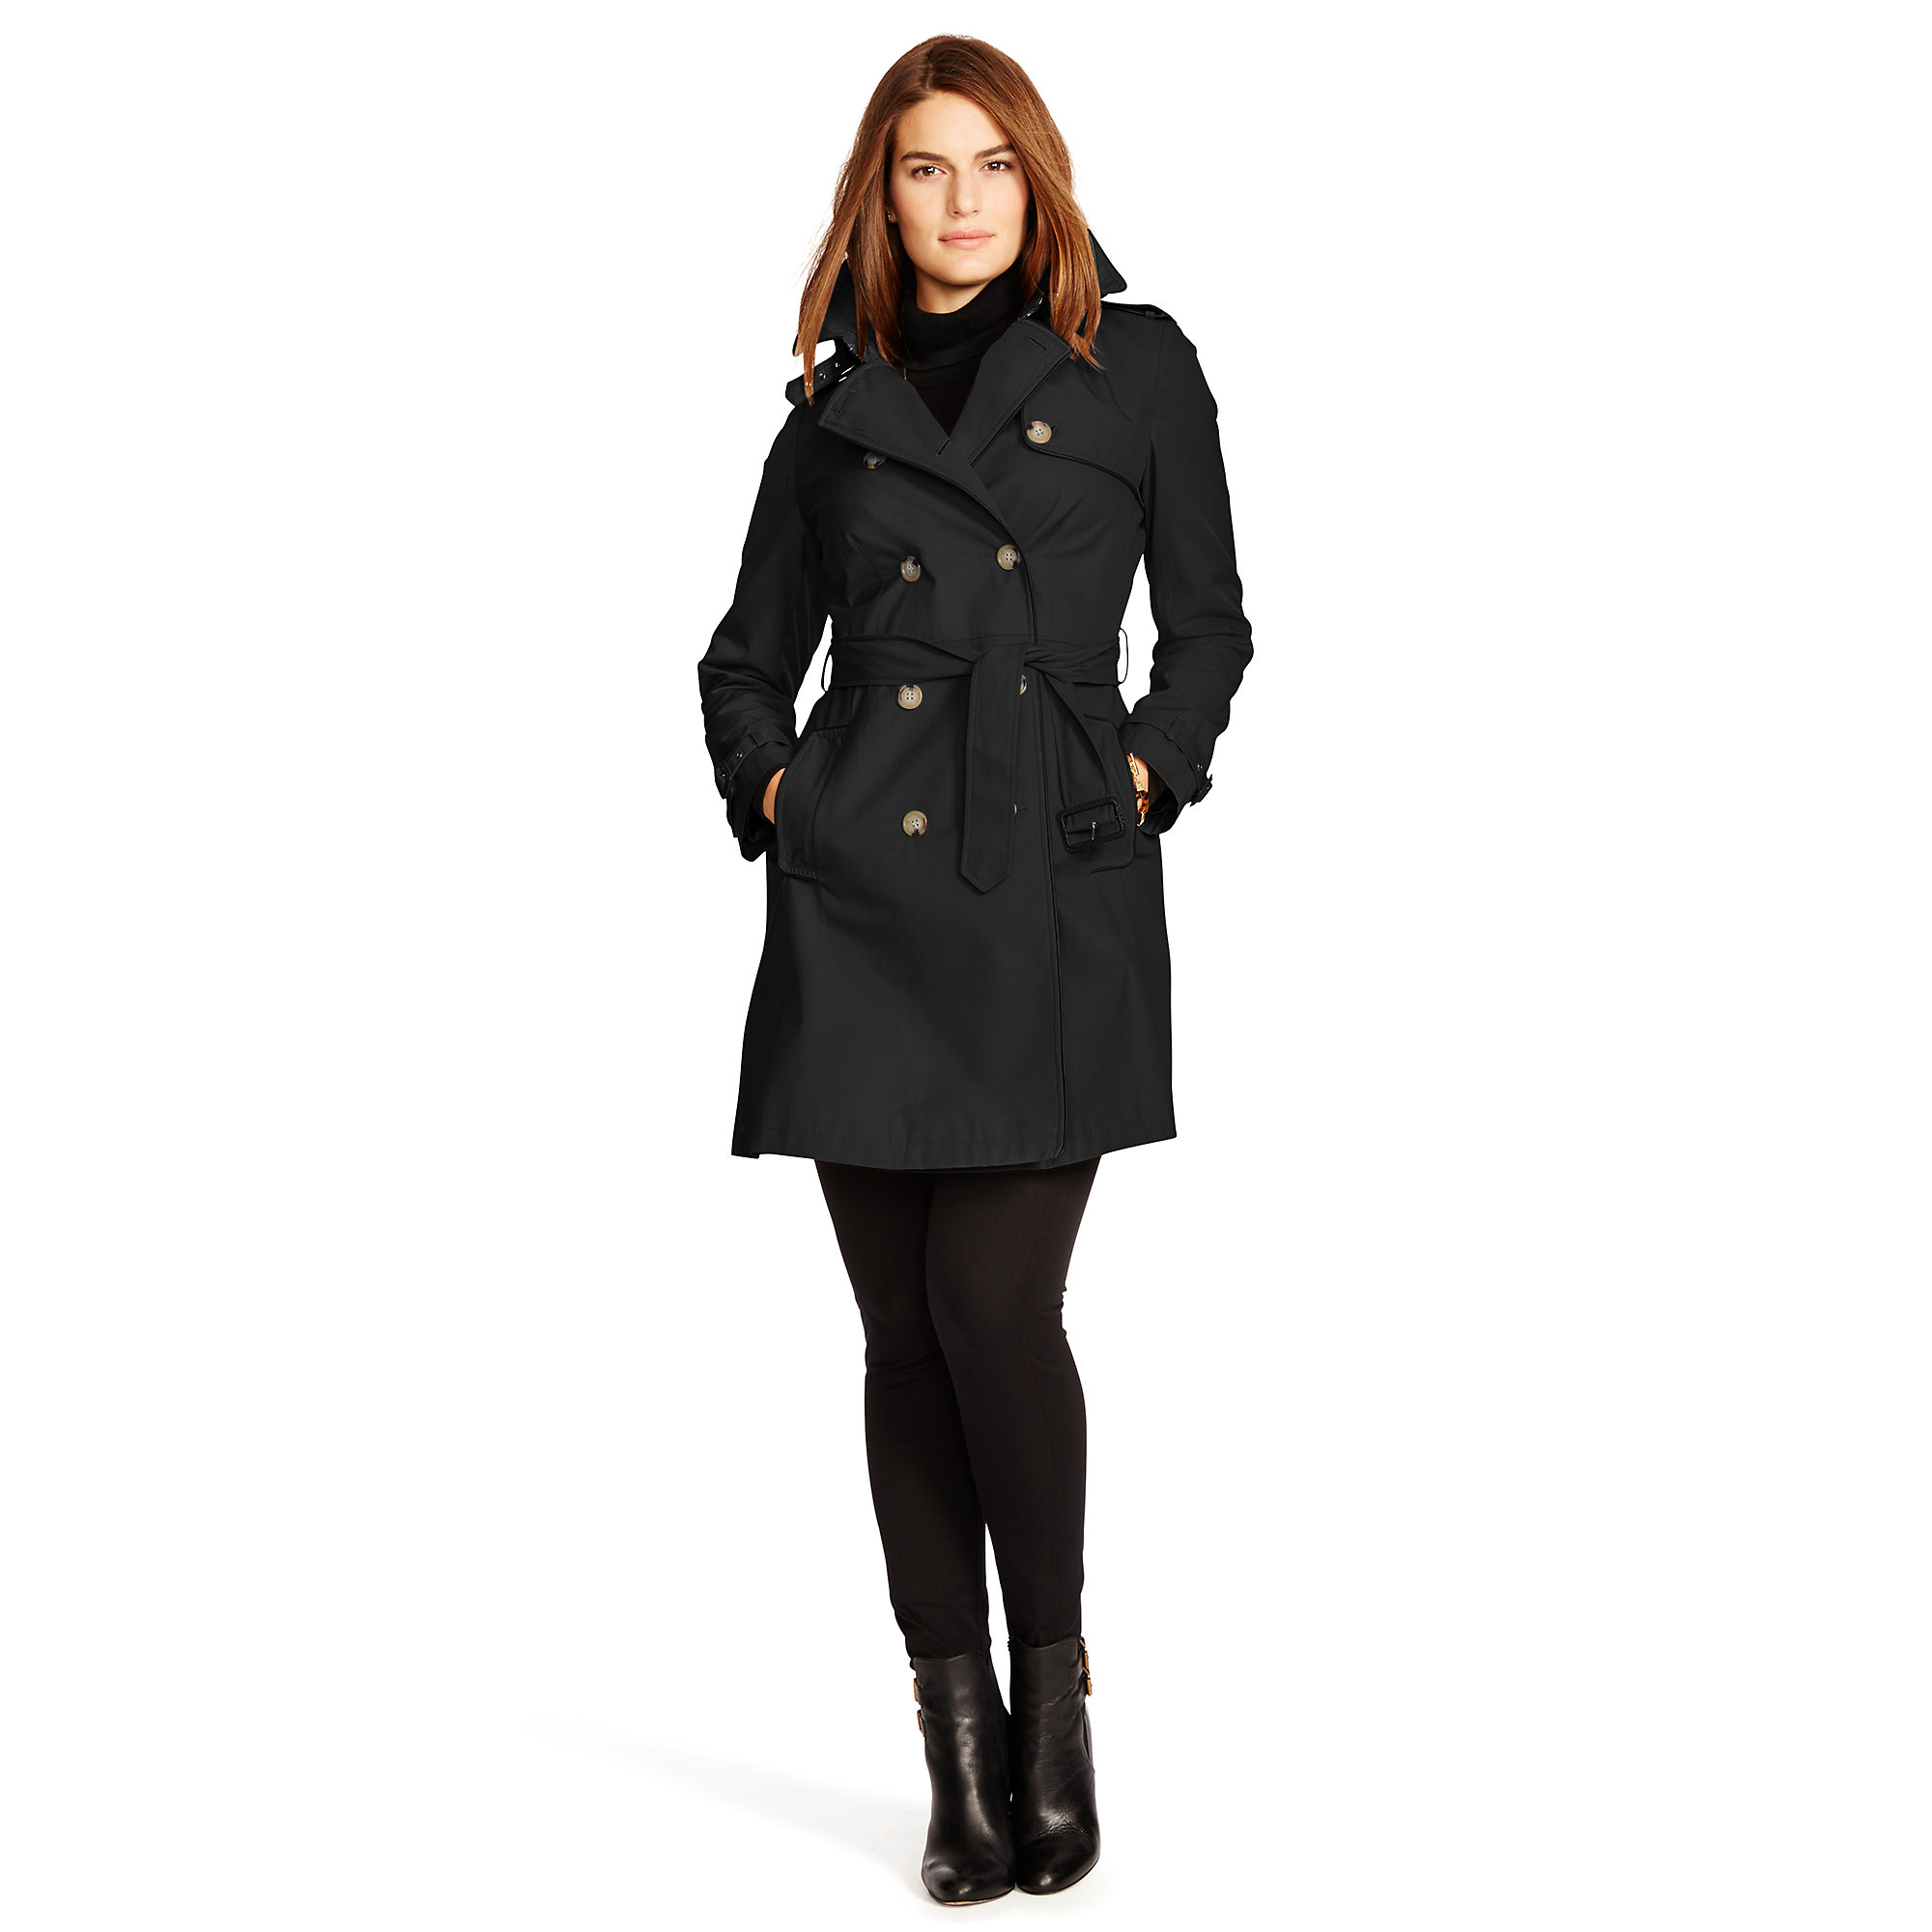 cd1aee3e Pink Pony Black Faux Leather–trim Trench Coat